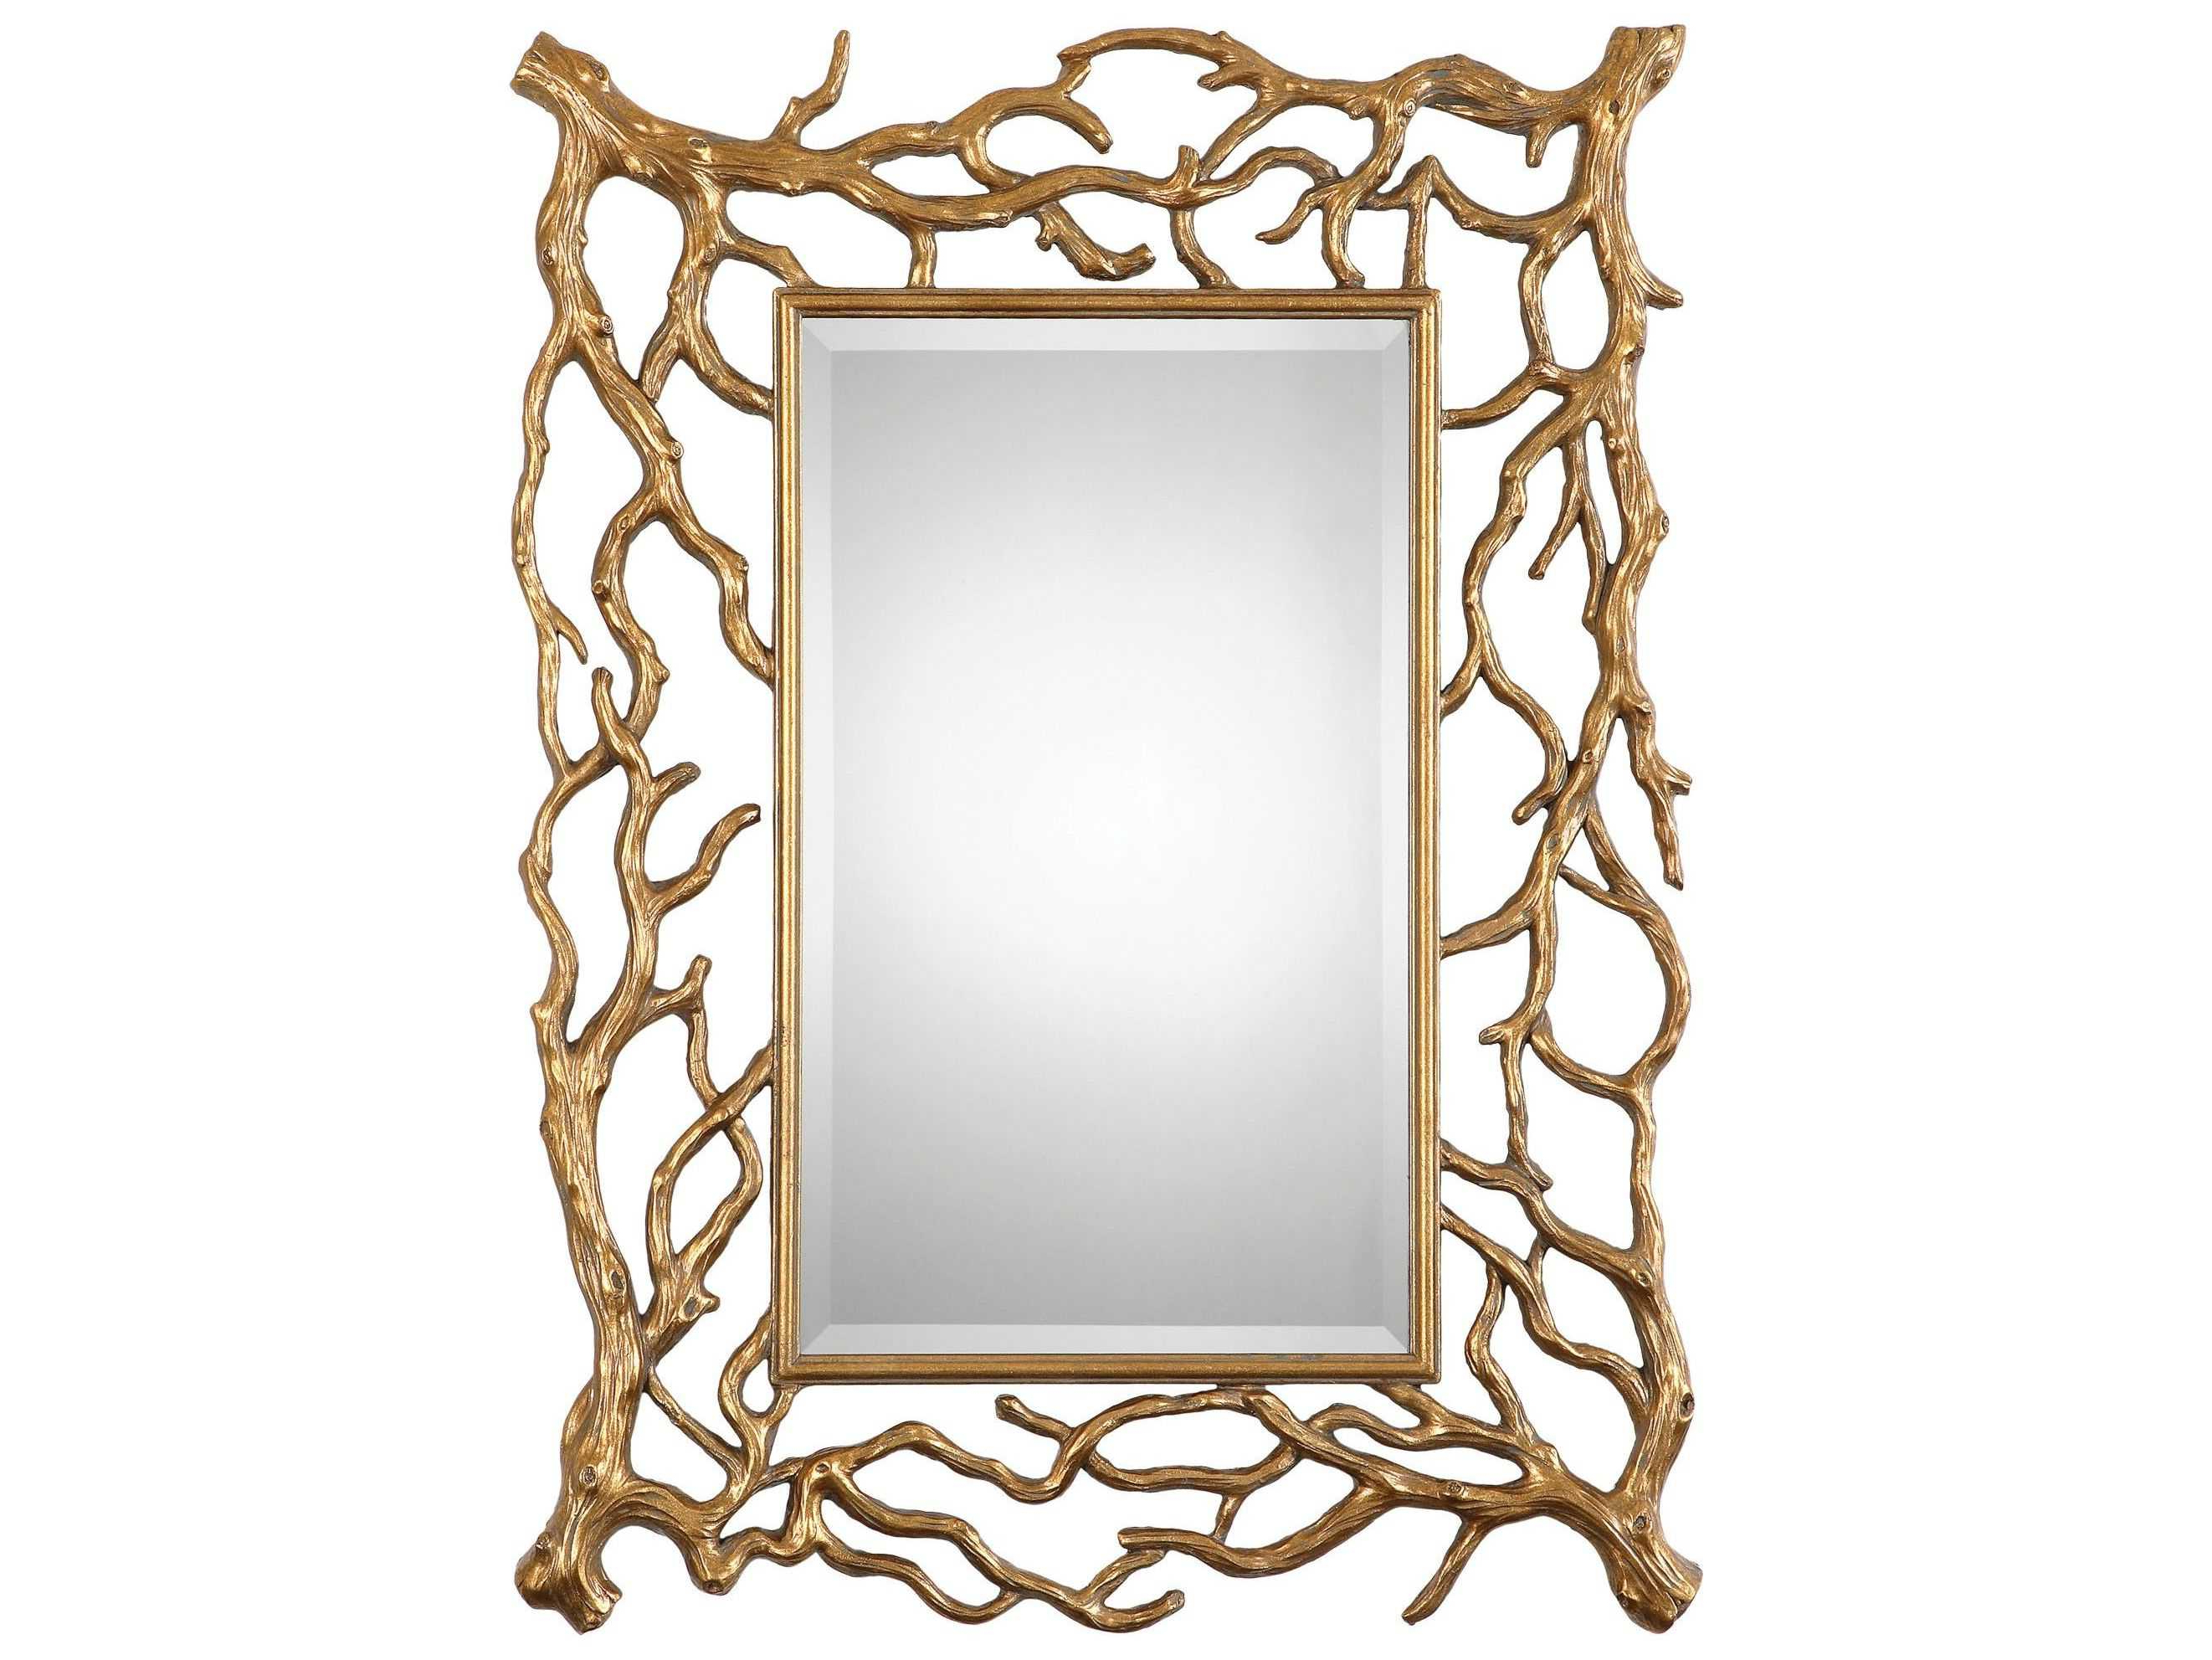 Uttermost Sequoia 30 X 40 Gold Tree Branch Wall Mirror Pertaining To Well Known Talida Wall Mirrors (Gallery 20 of 20)